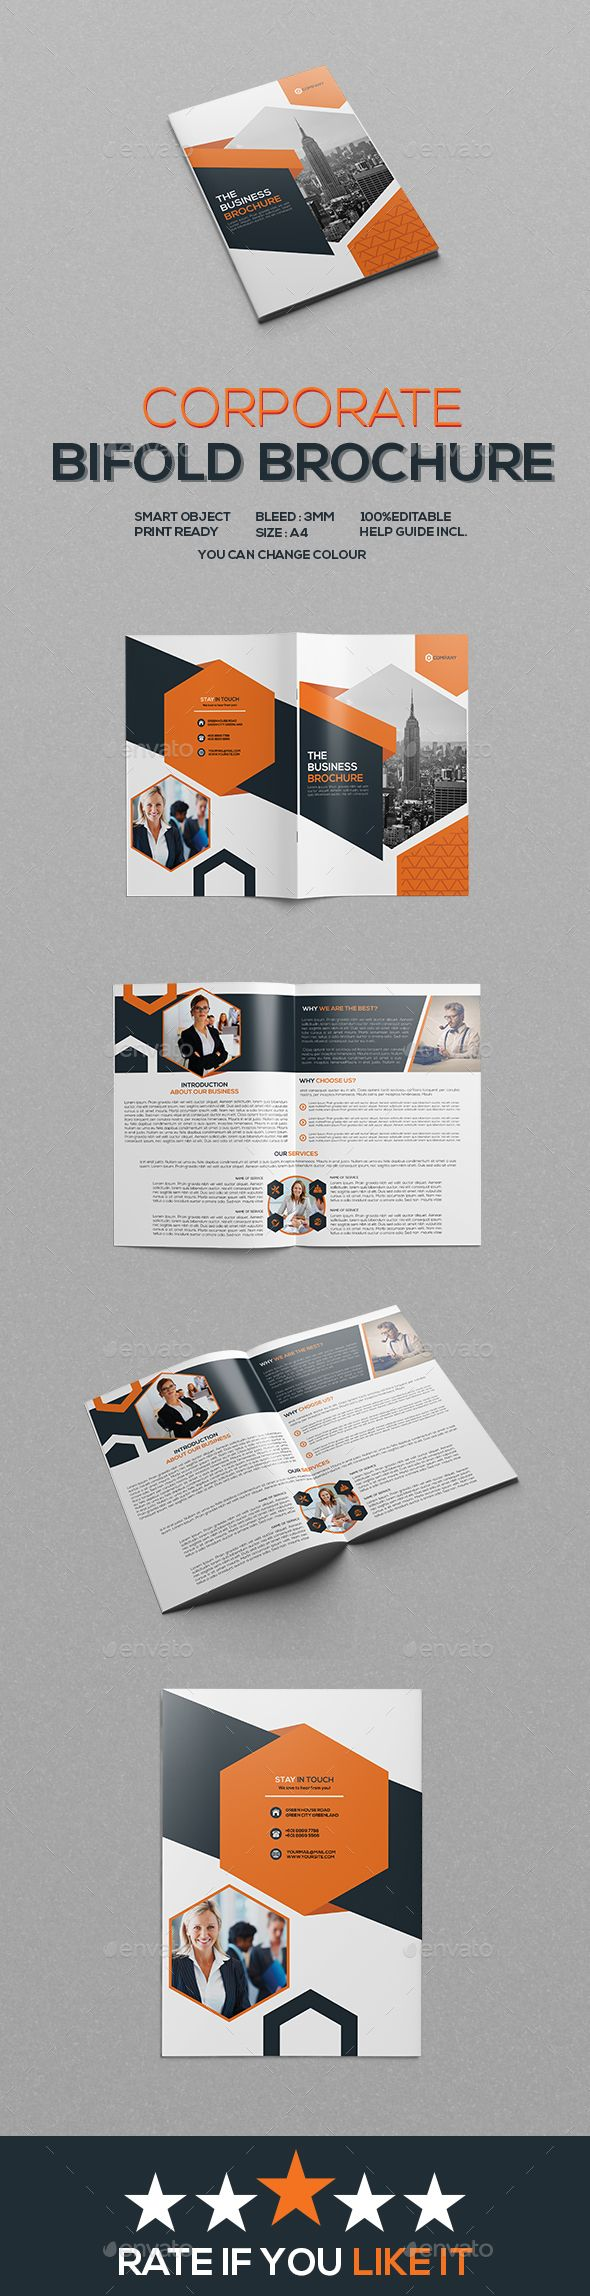 74 best marketing ideas images on pinterest page layout brochures